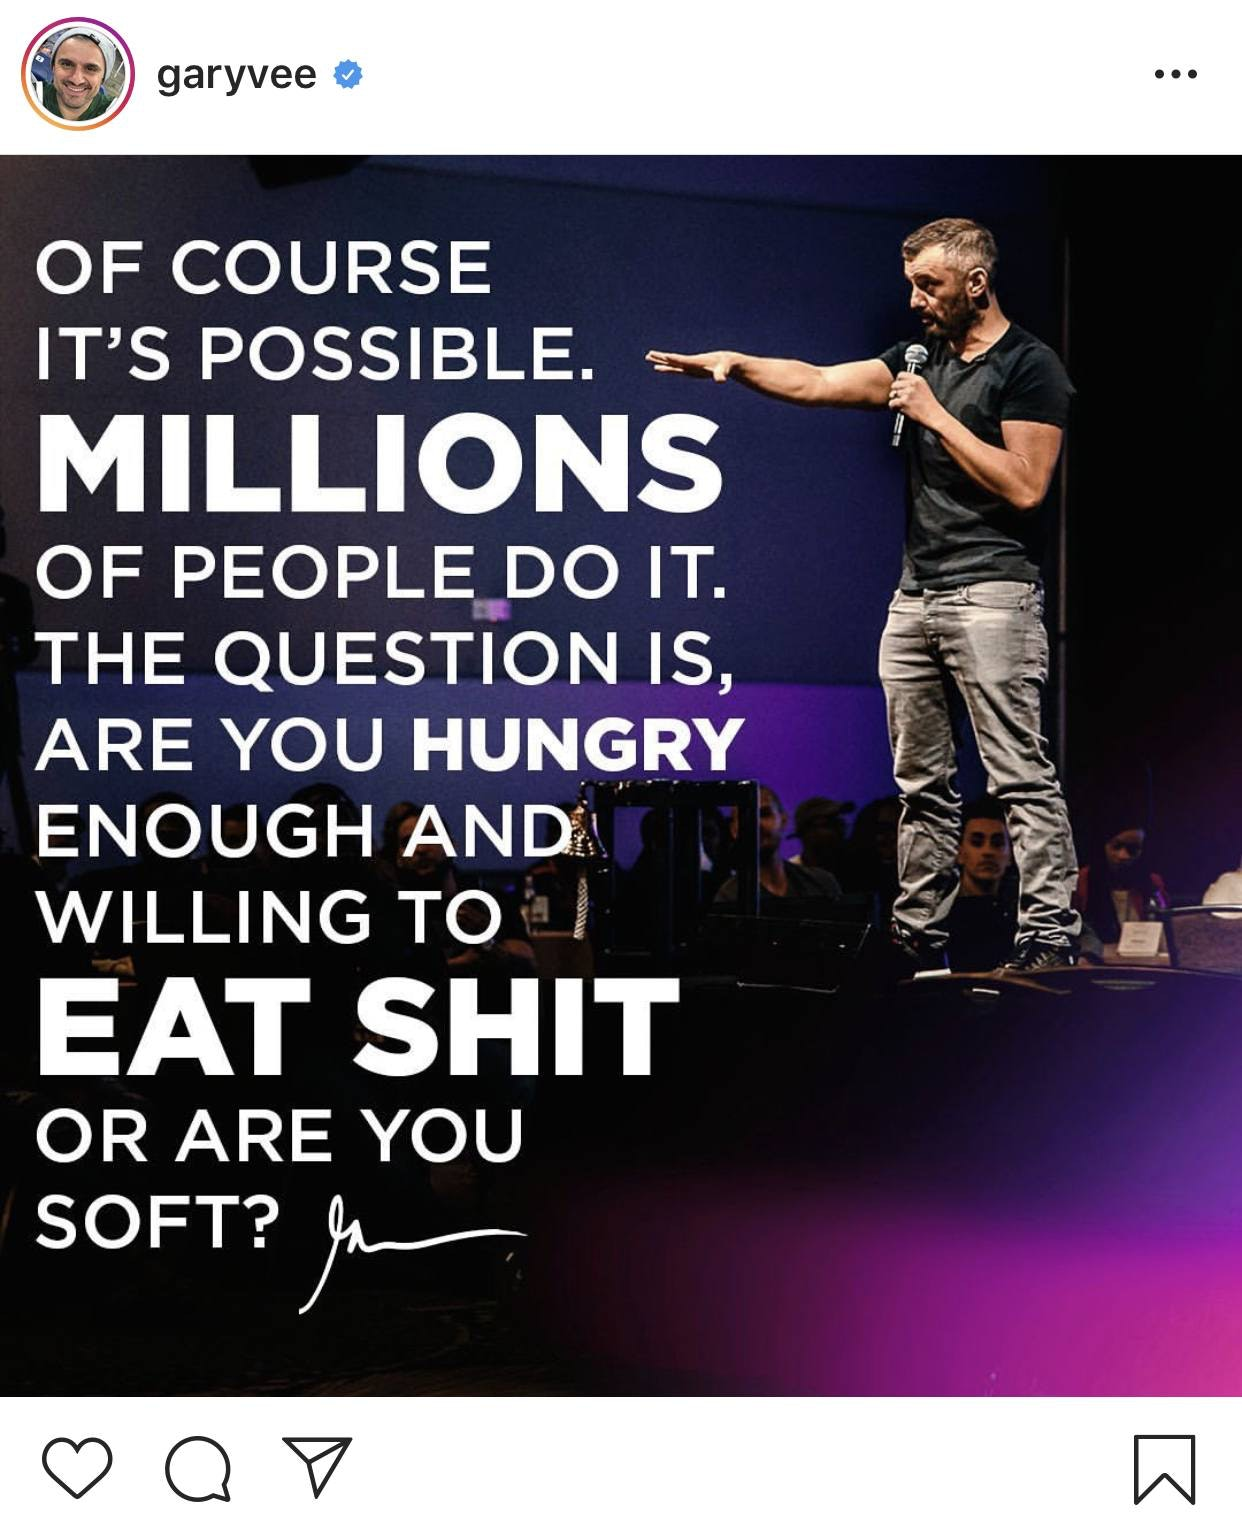 Gary Vaynerchuk instagram account